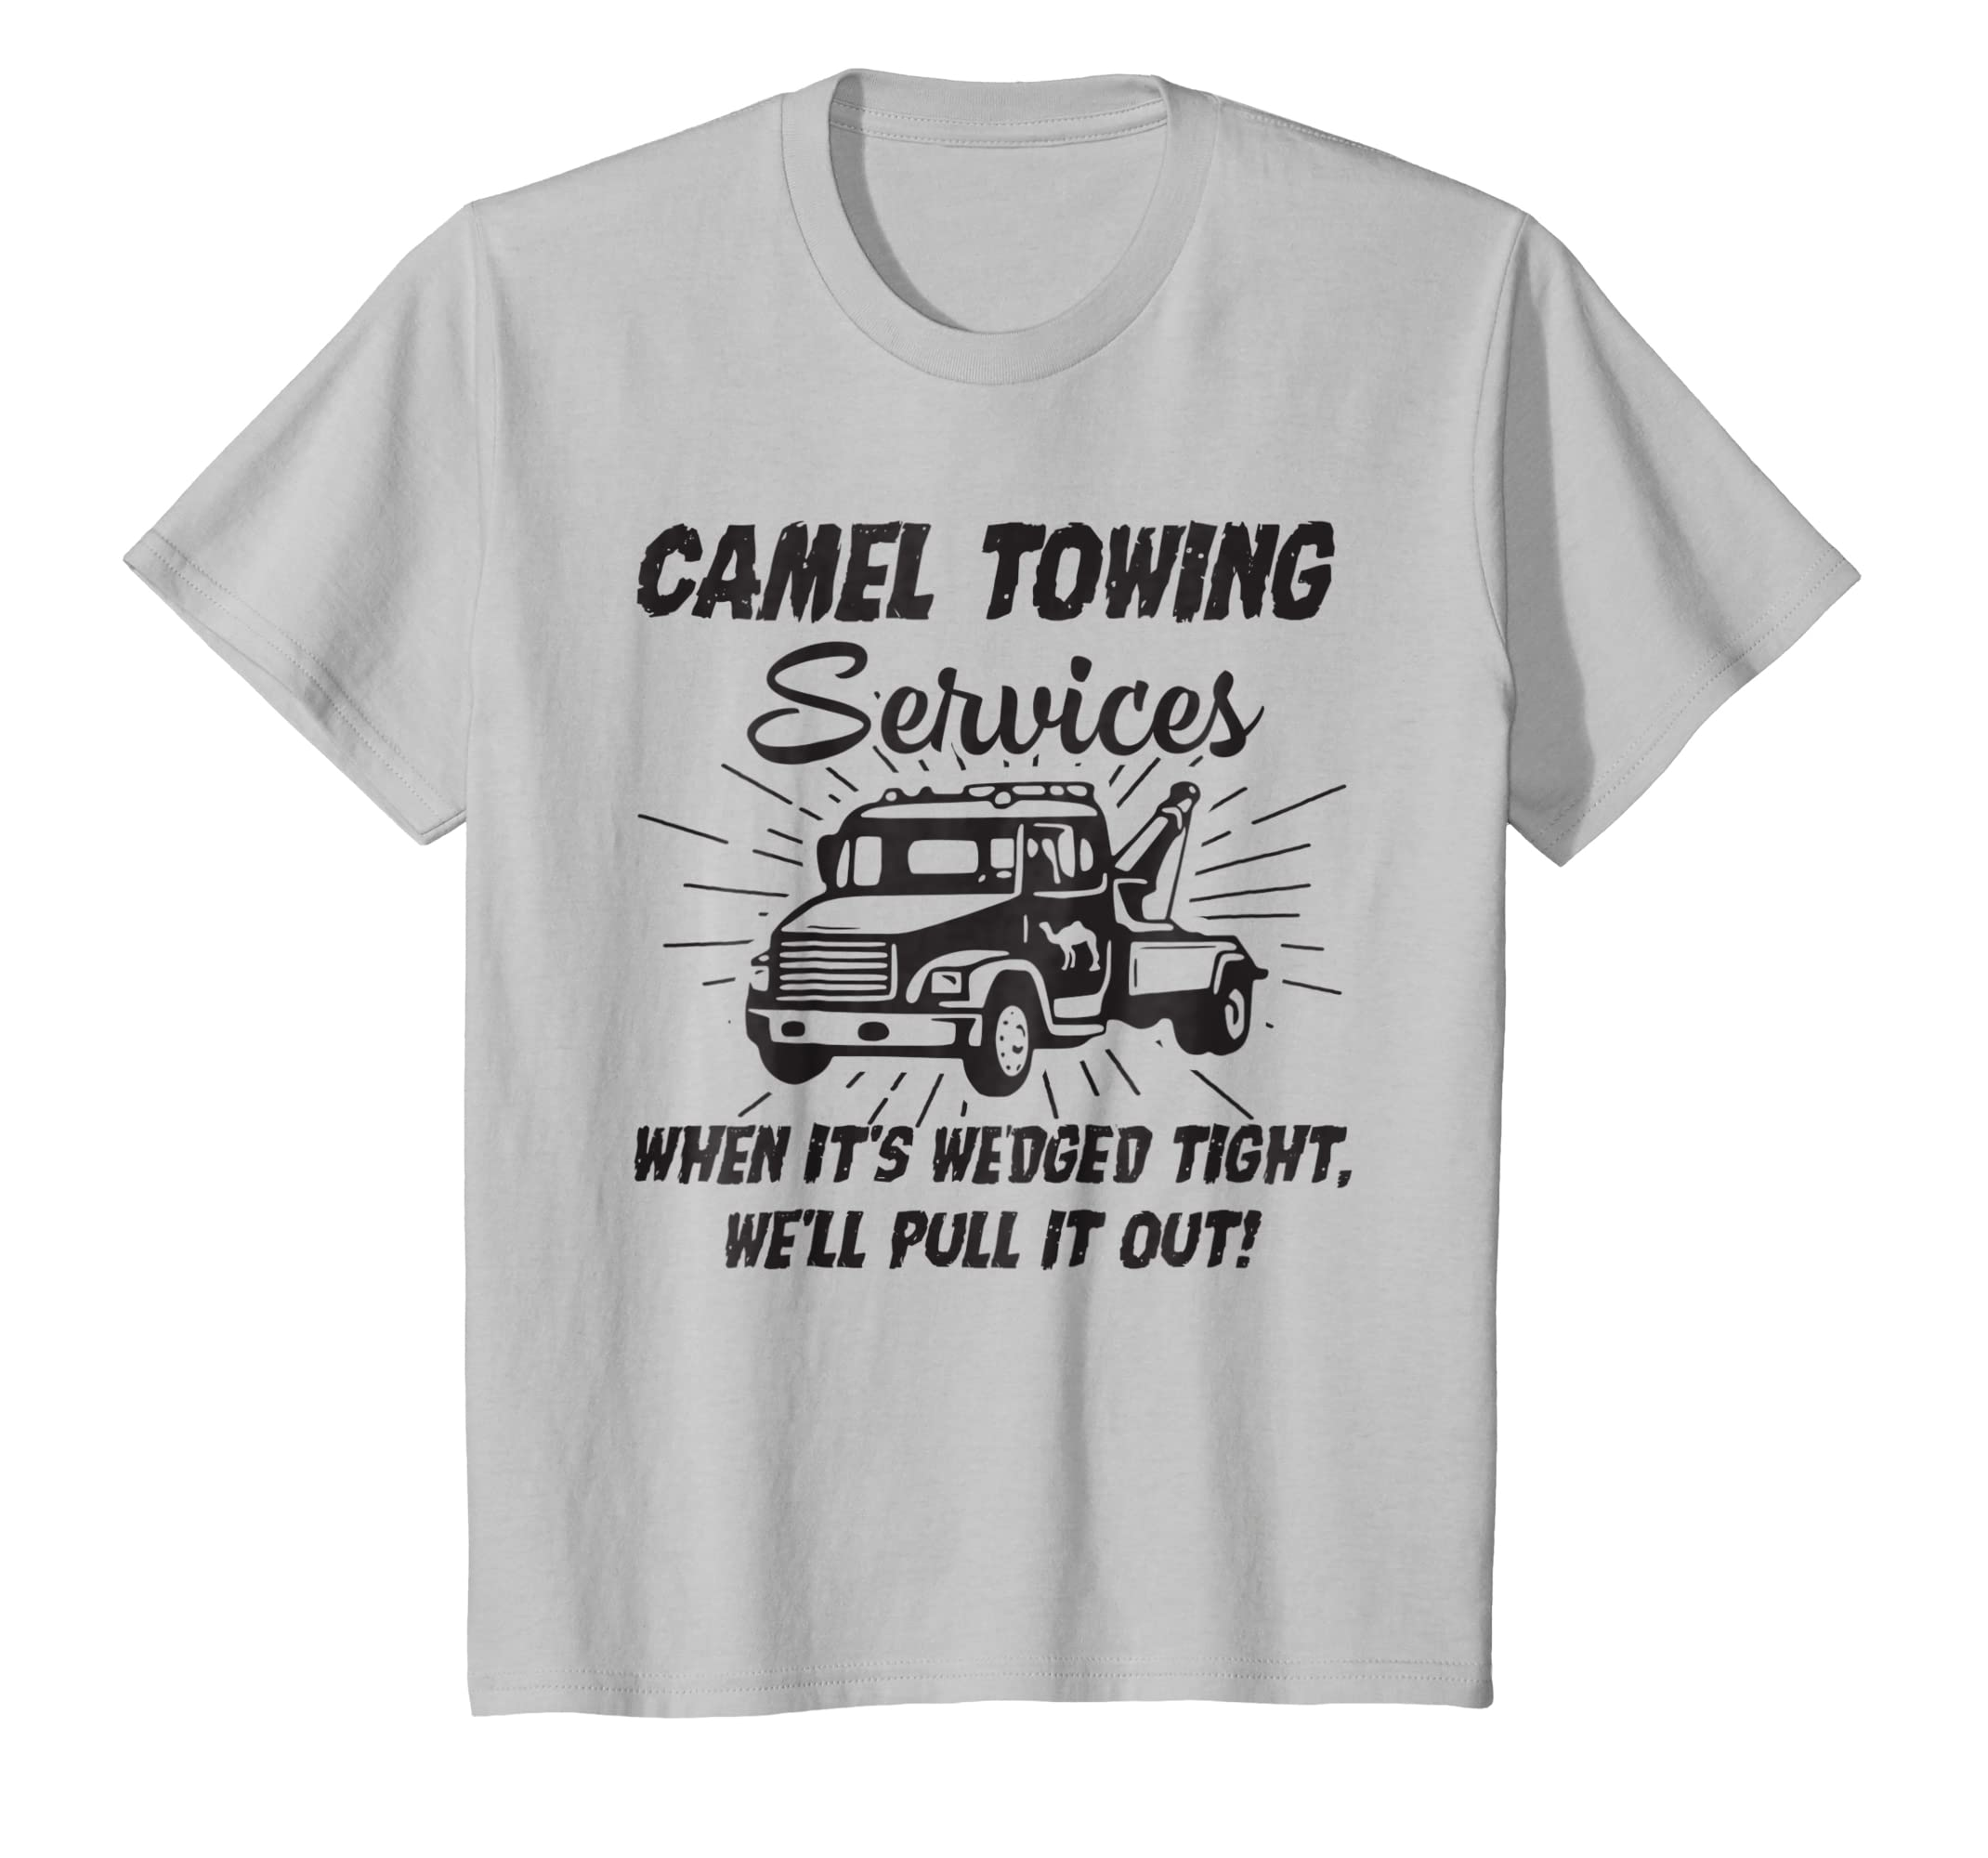 fdcd6075d Amazon.com: Funny Camel Towing Services T-Shirt: Clothing